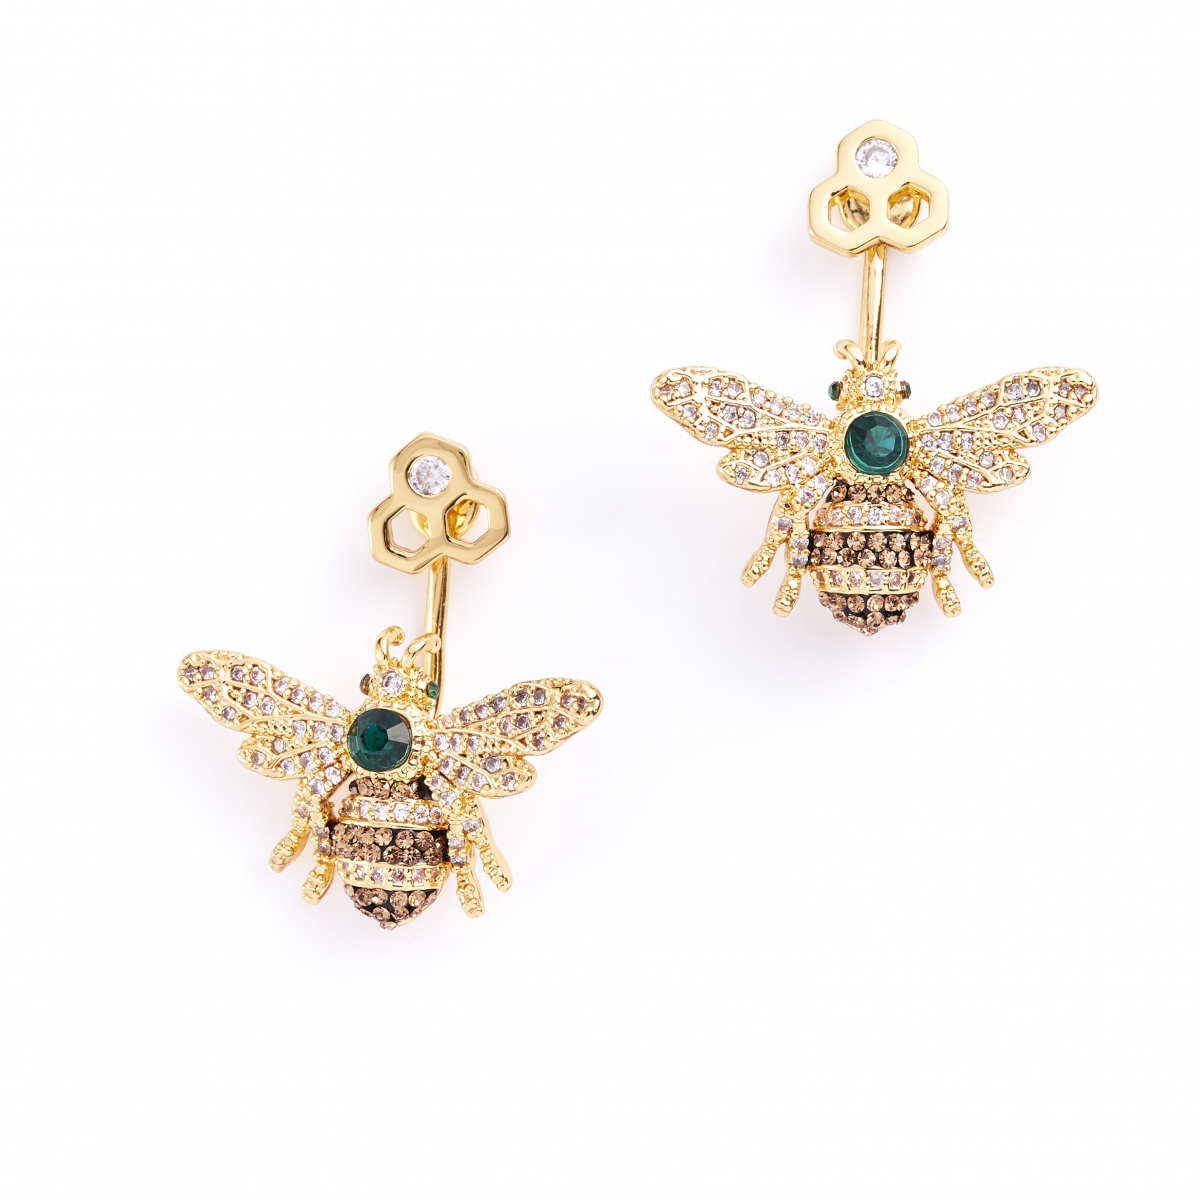 25 Year Anniversary Queen Bee Earrings